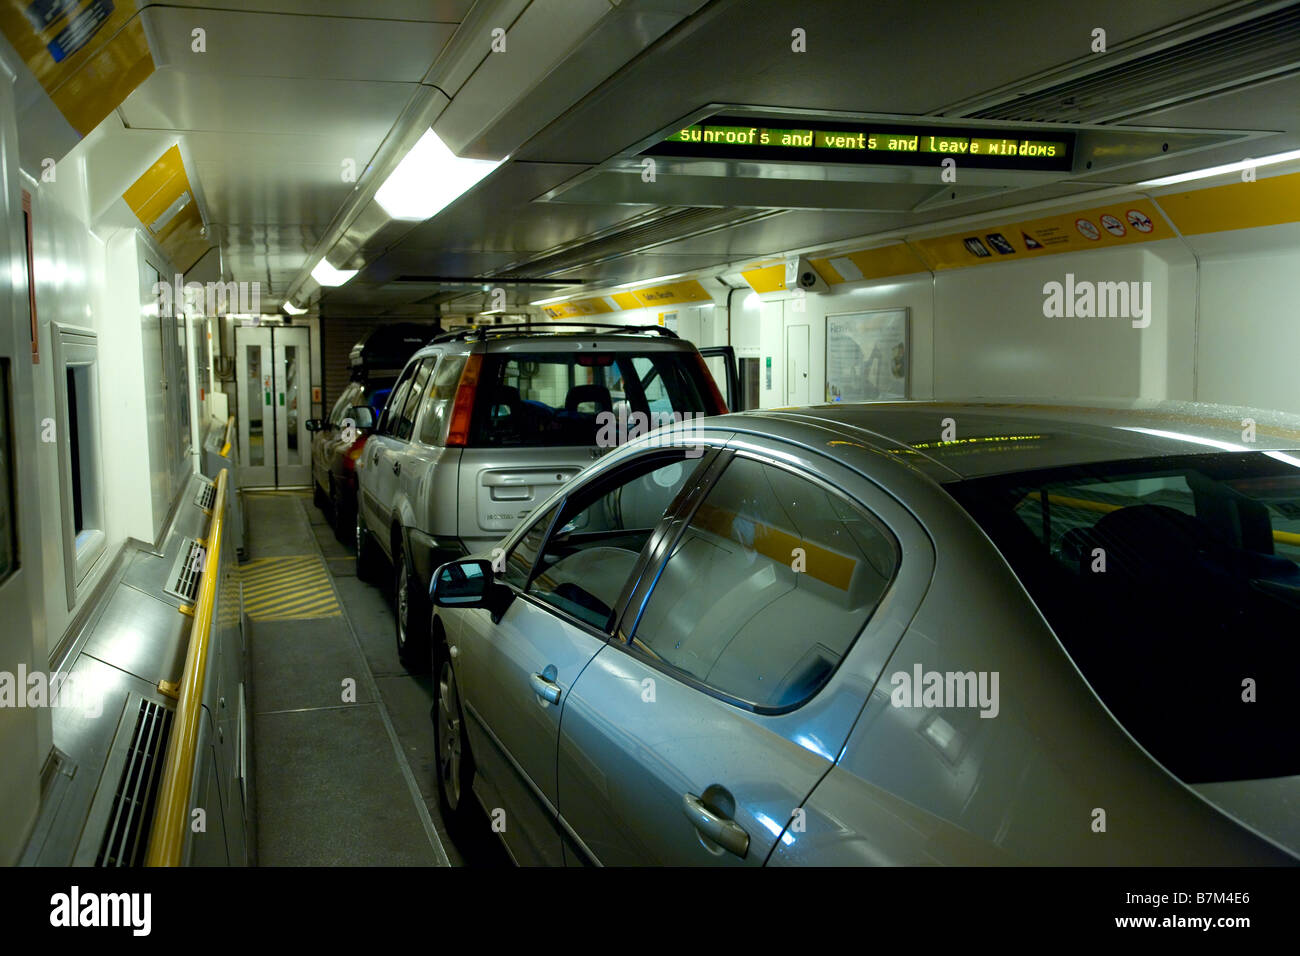 cars inside channel tunnel train eurotunnel england europe stock photo 21955534 alamy. Black Bedroom Furniture Sets. Home Design Ideas